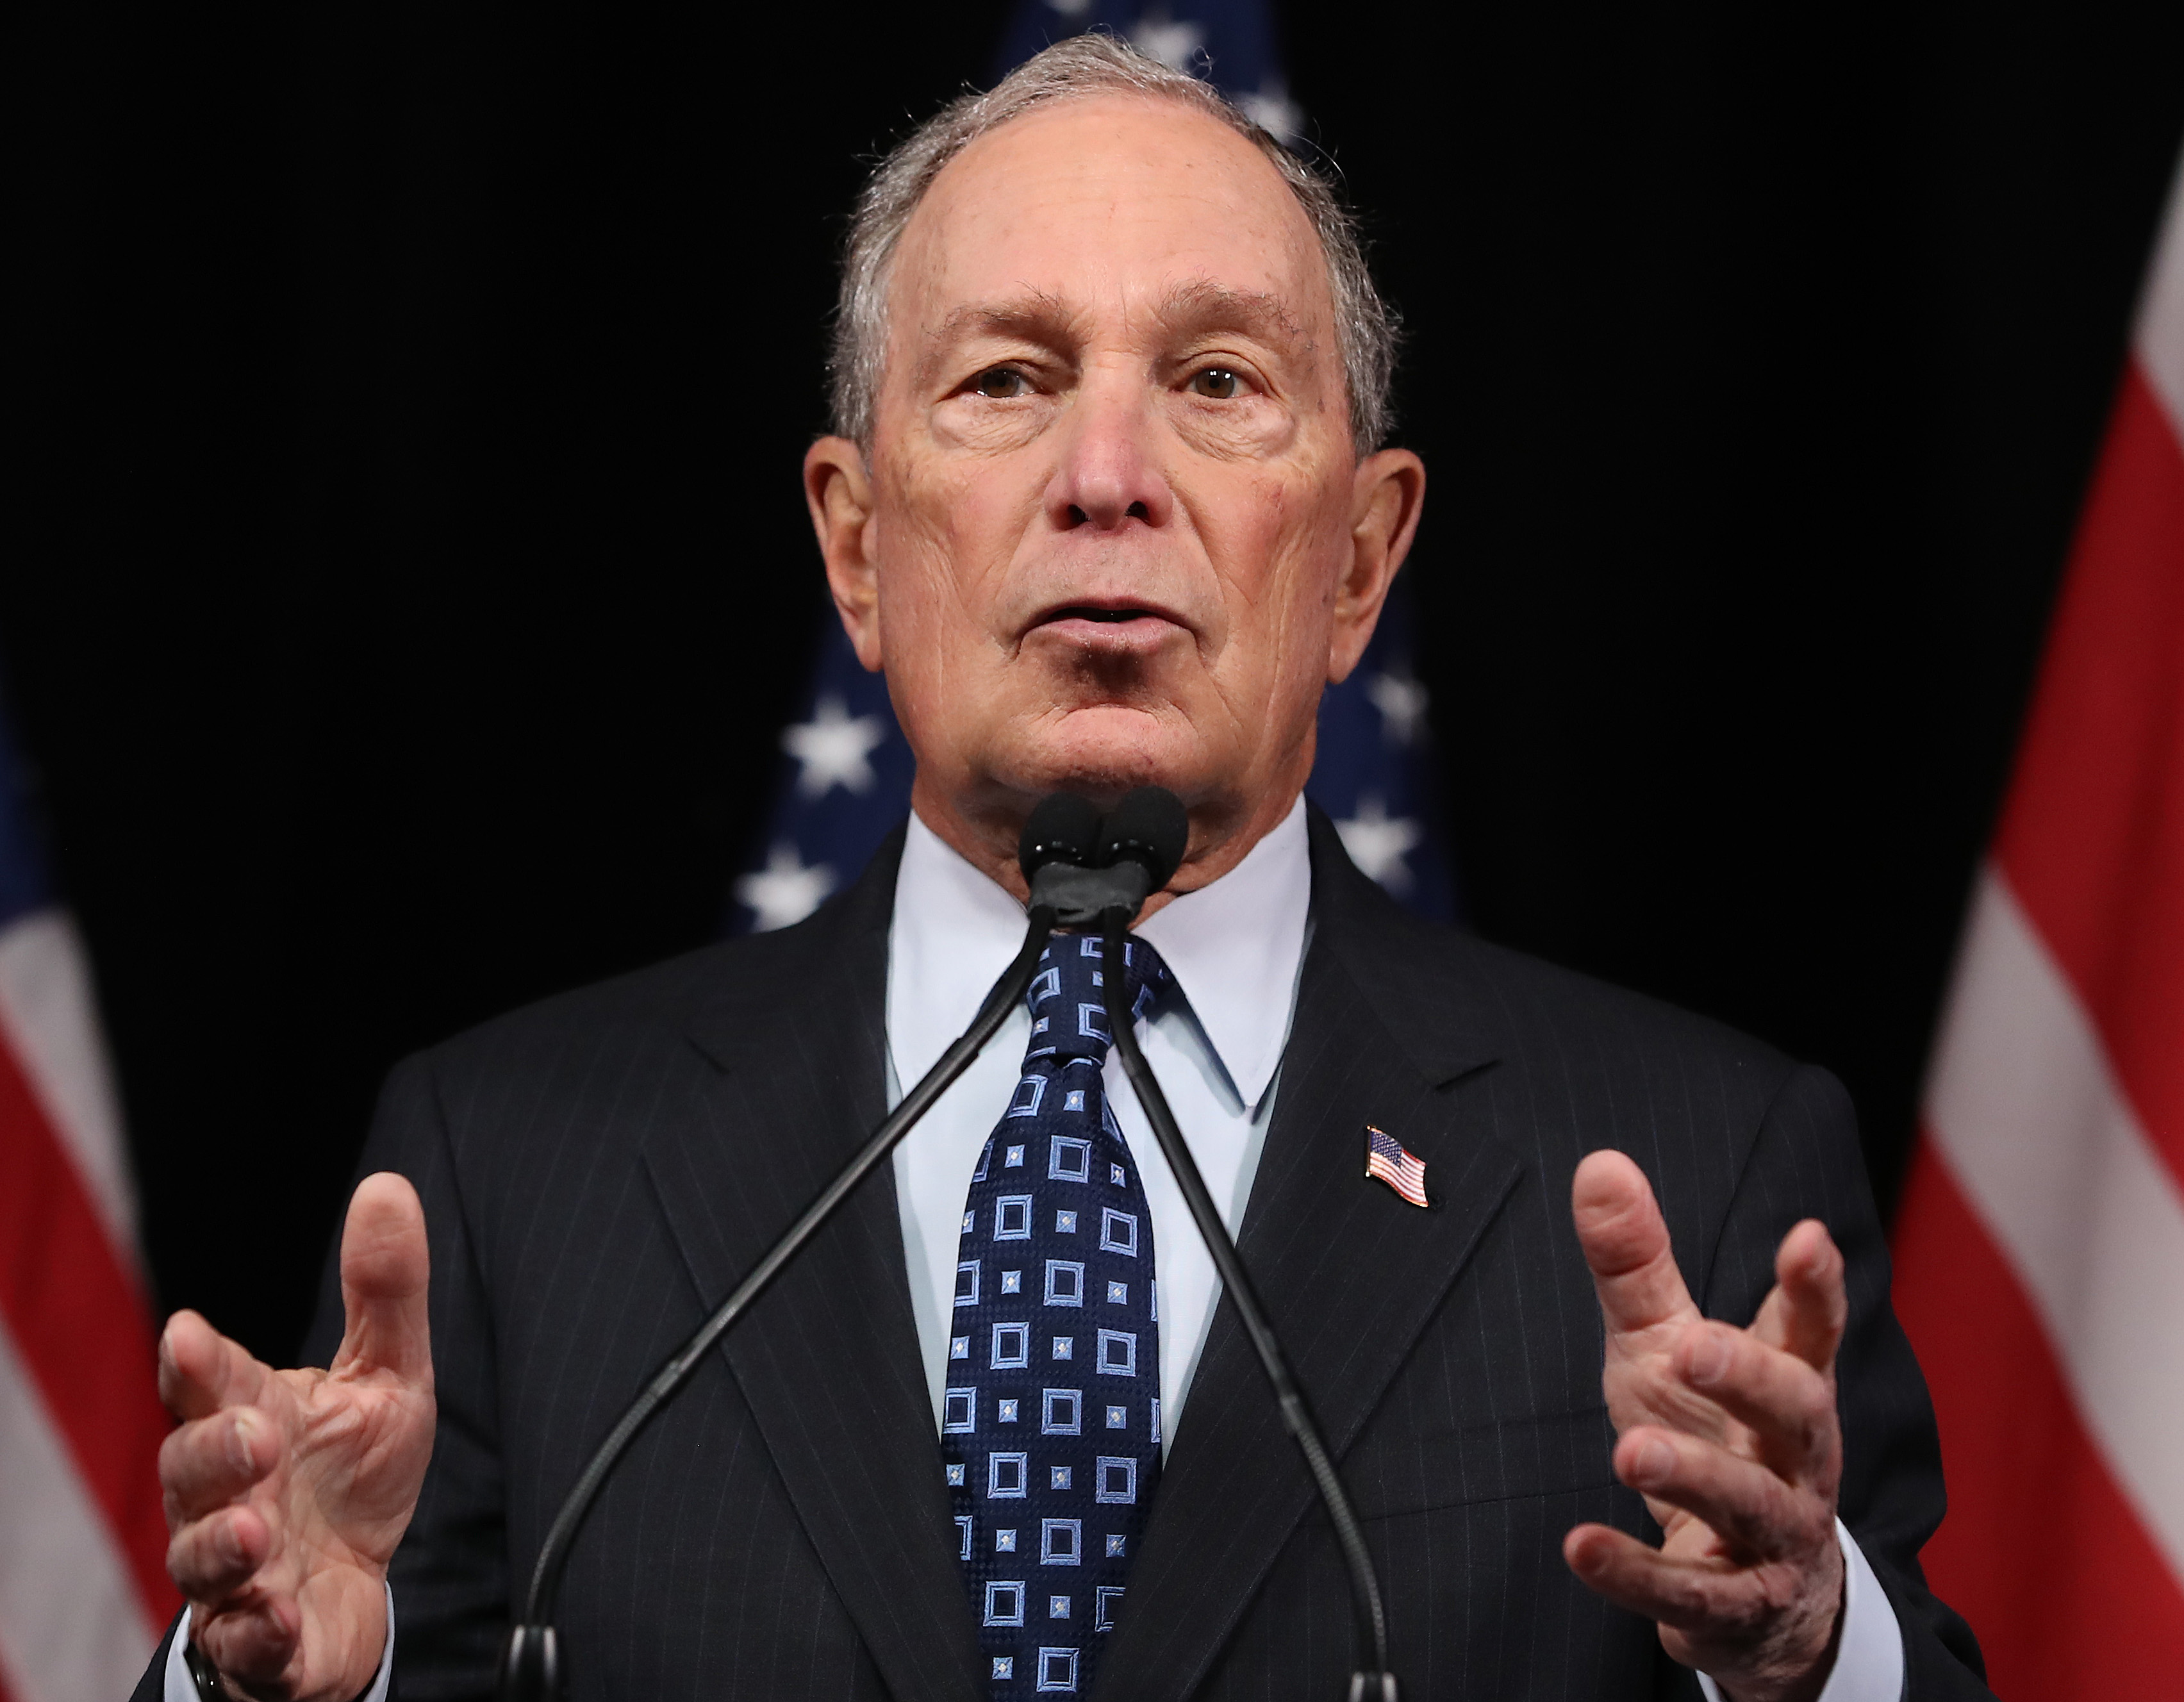 WASHINGTON, DC - JANUARY 30: Democratic presidential candidate, former New York City Mayor Michael Bloomberg speaks about affordable housing during a campaign event where he received an endorsement from District of Columbia Mayor, Muriel Bowser, on January 30, 2020 in Washington, DC. The first-in-the-nation Iowa caucuses will be held February 3. (Photo by Mark Wilson/Getty Images)